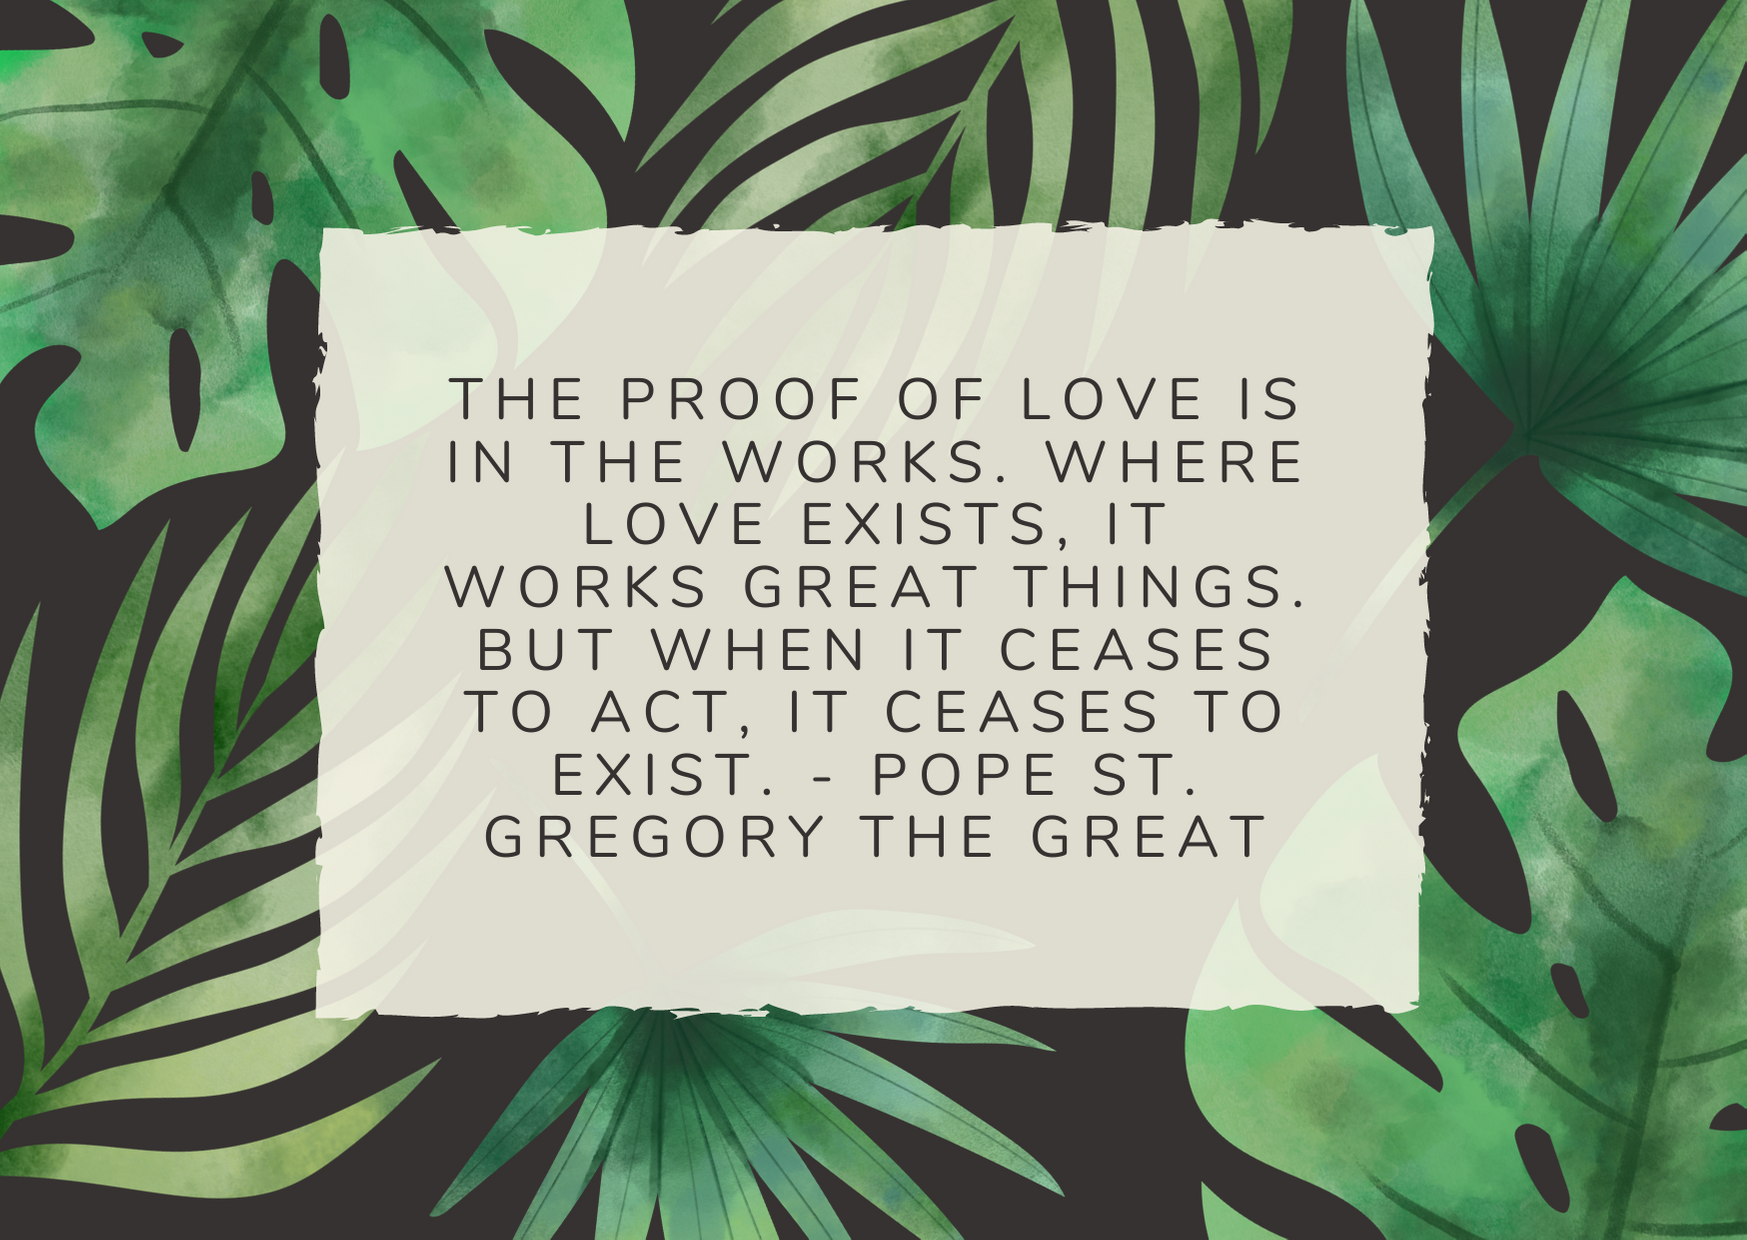 The proof of love is in the works. Where love exists, it works great things. But when it ceases to act, it ceases to exist. - Pope St. Gregory the Great